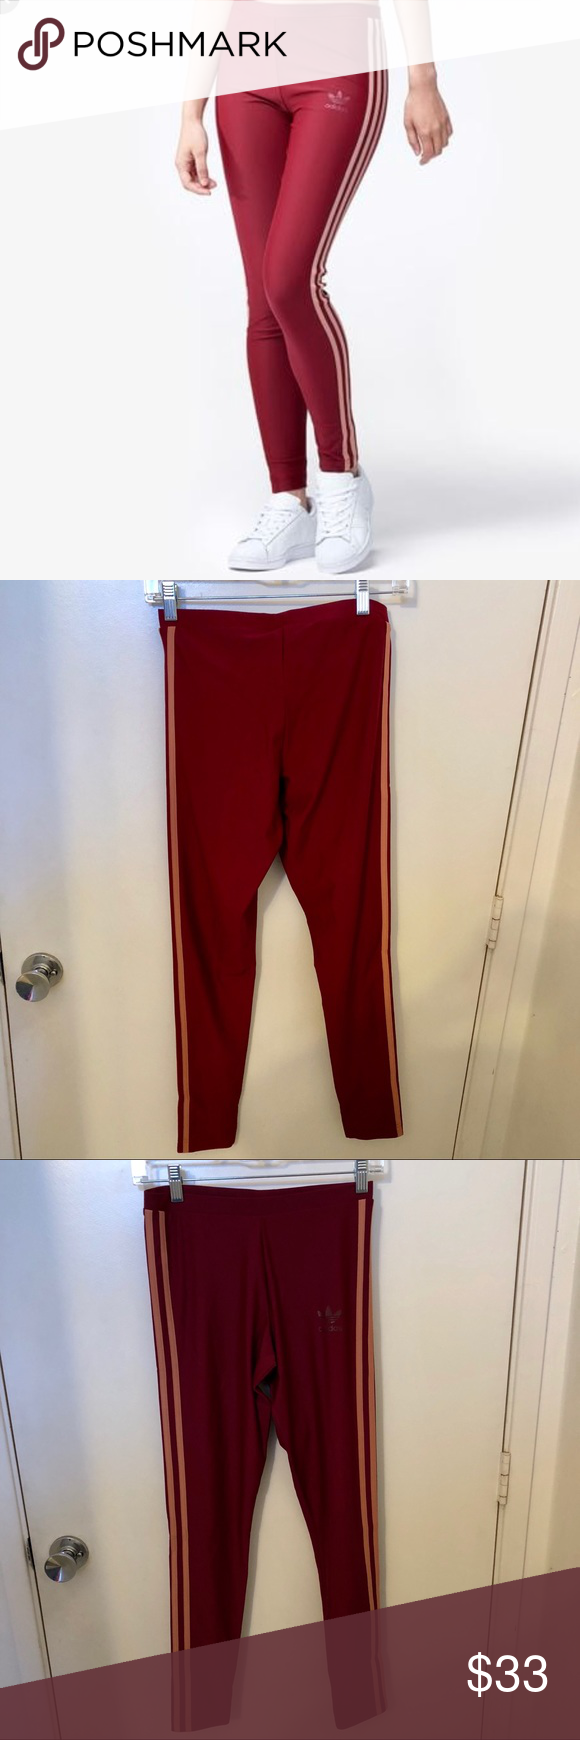 30b097515868 NWT adidas burgundy 3 stripe leggings S NWT tag burgundy and peach stripe  adidas legging tights for workout or trendy casual wear . adidas Pants  Leggings